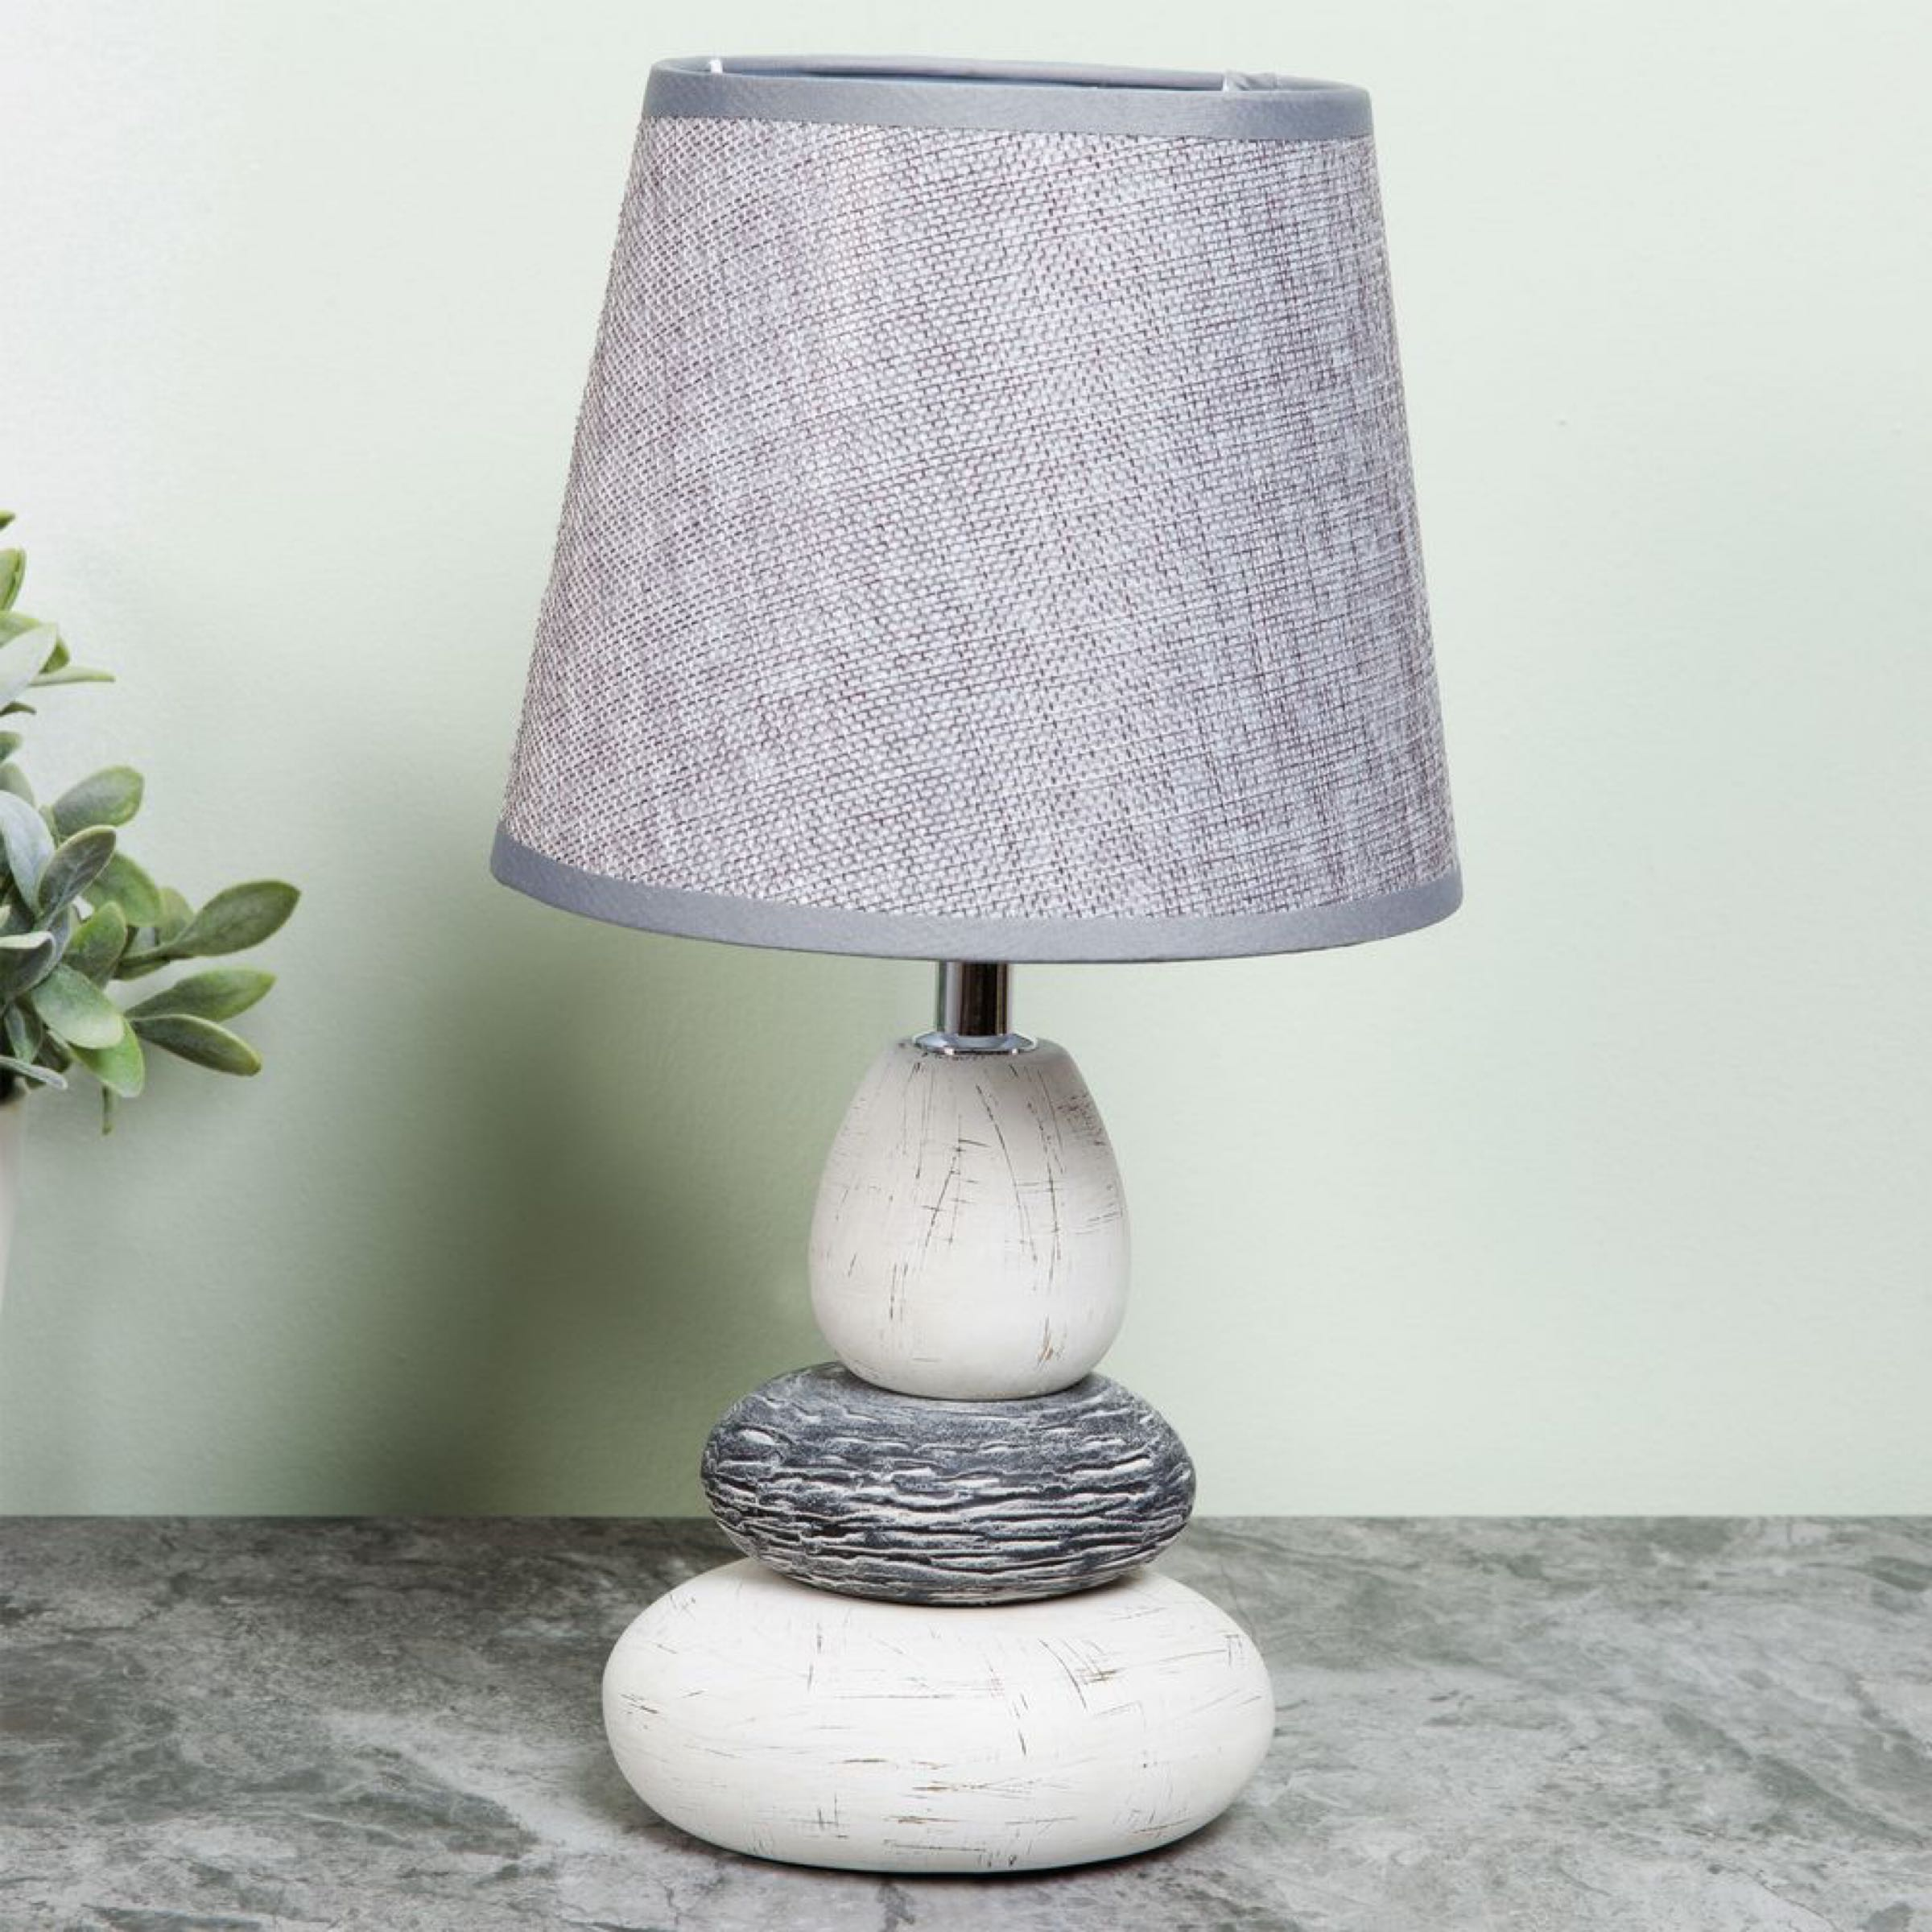 Moroccan Collection Pebble Lamp with Grey Shade 15cm